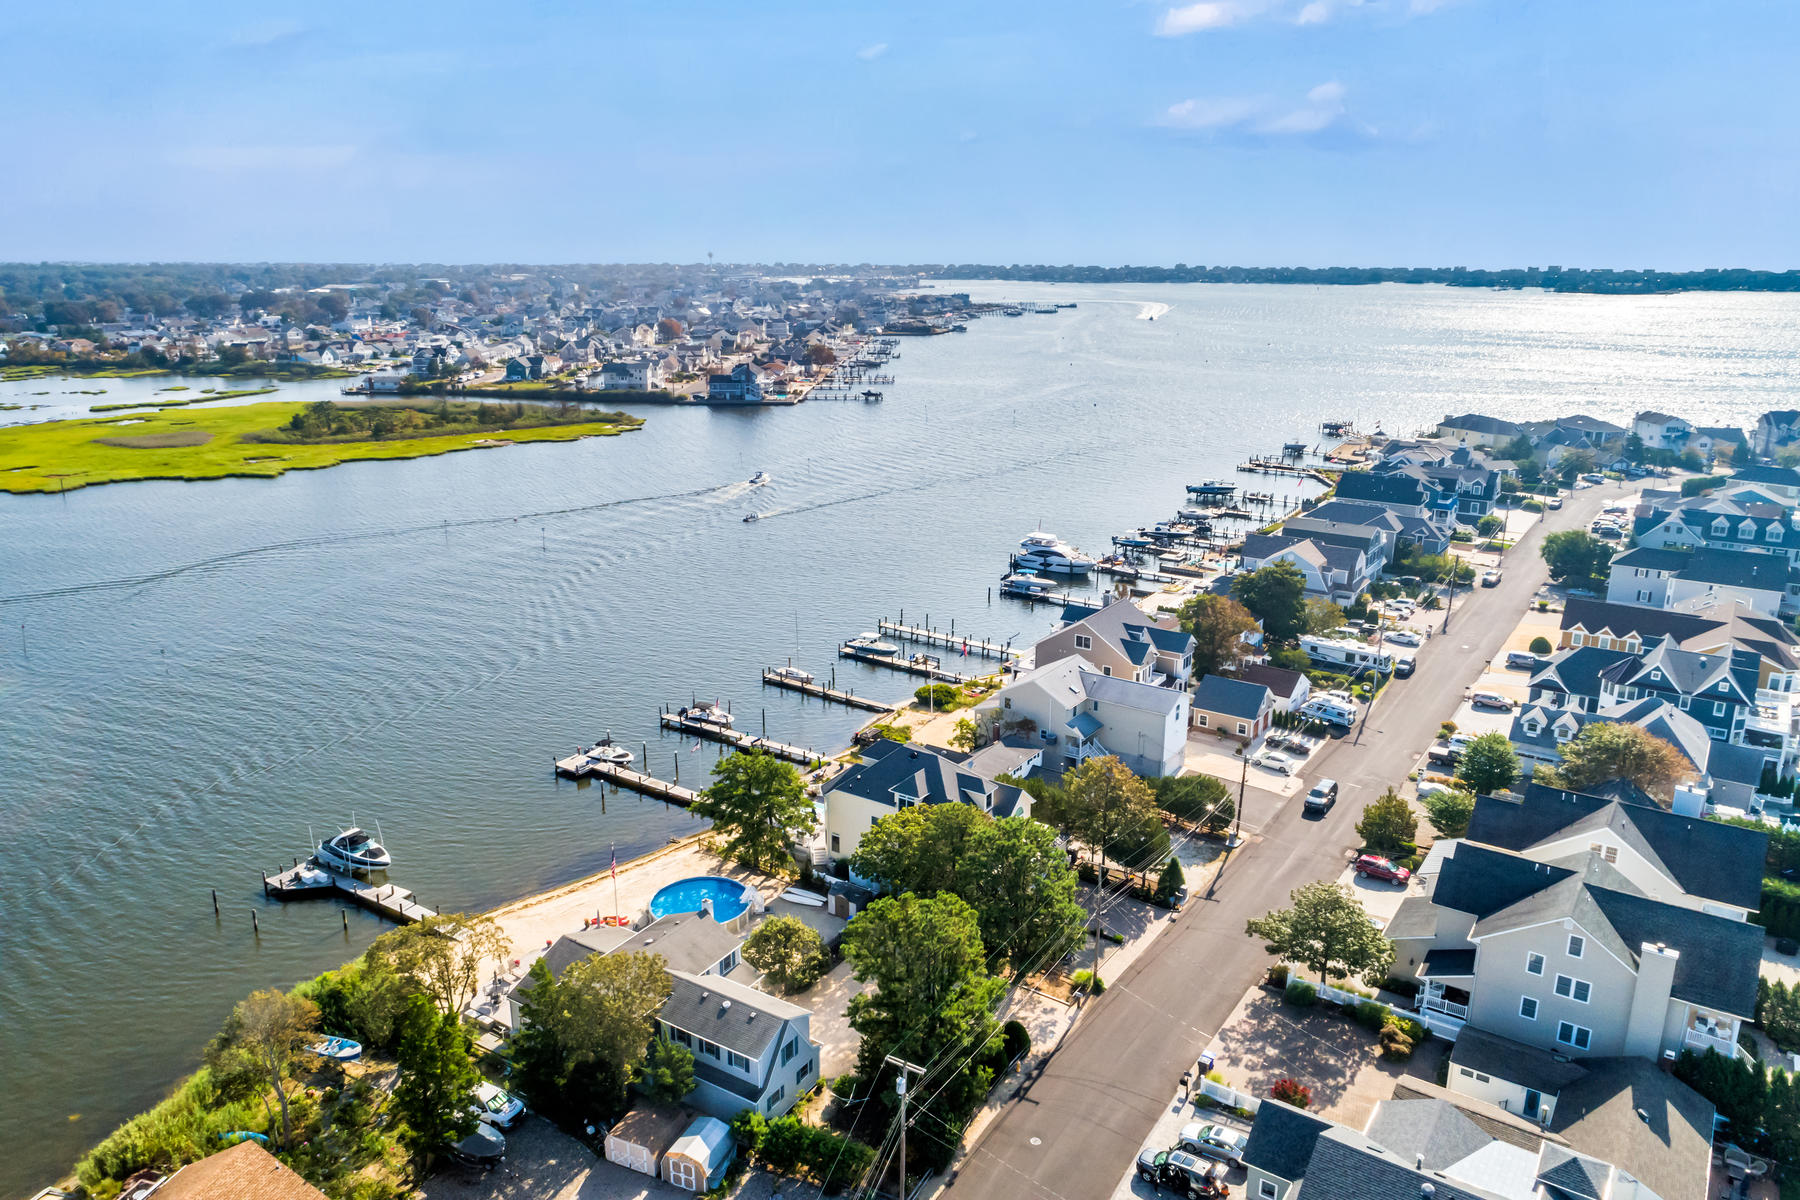 Single Family Homes for Active at Beautiful Private Waterfront Community 782 North Drive Brick, New Jersey 08724 United States